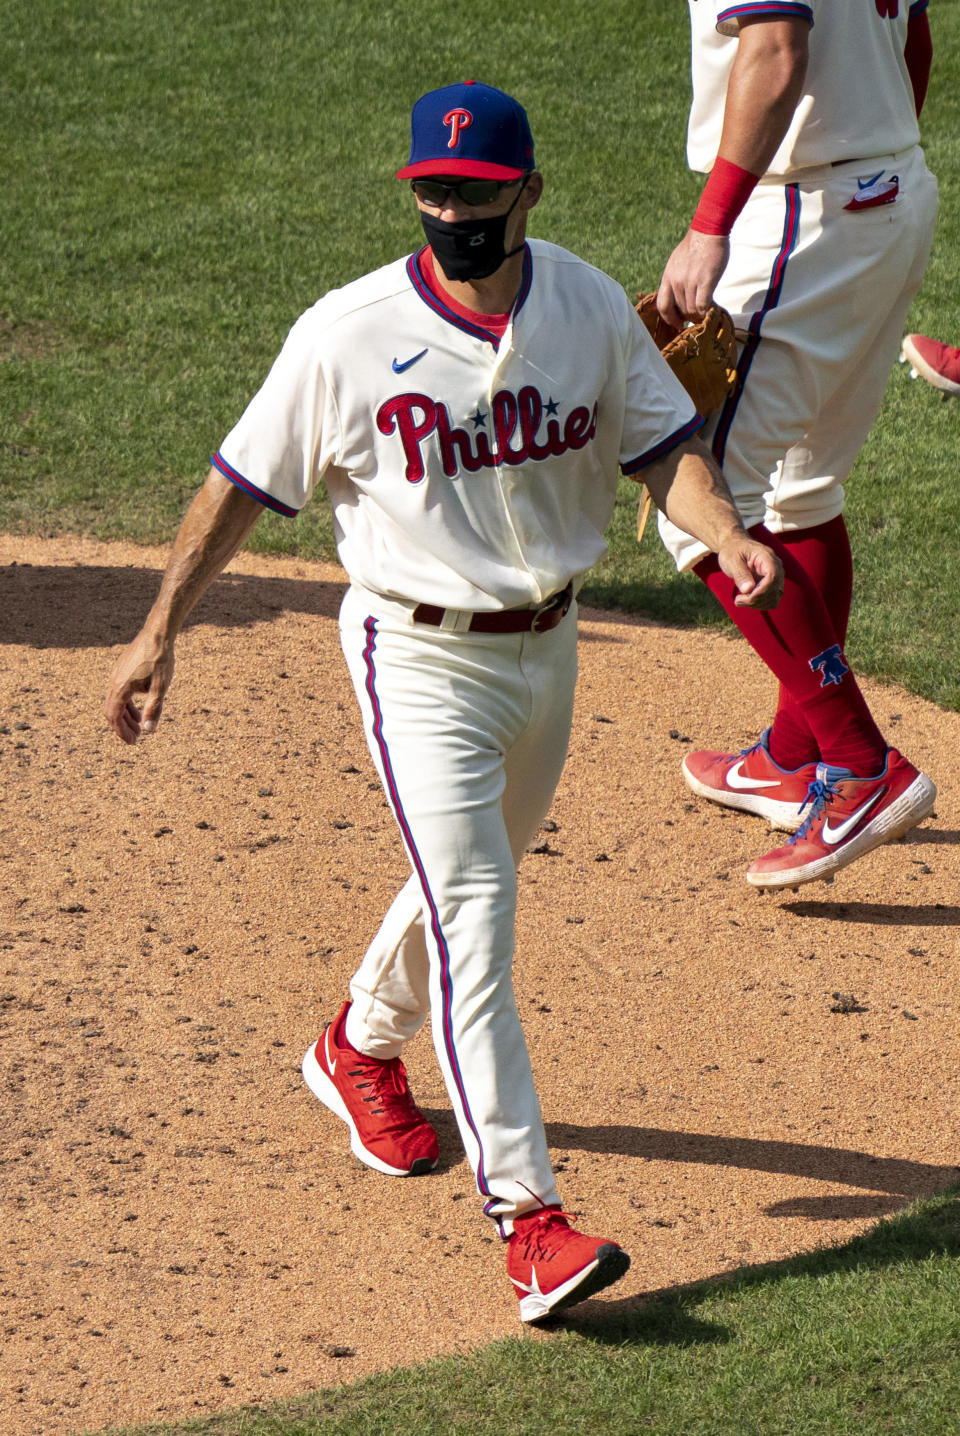 Philadelphia Phillies' manager Joe Girardi heads back to the dugout after making a pitching change during the ninth inning of a baseball game against the Miami Marlins, Sunday, July 26, 2020, in Philadelphia. (AP Photo/Chris Szagola)